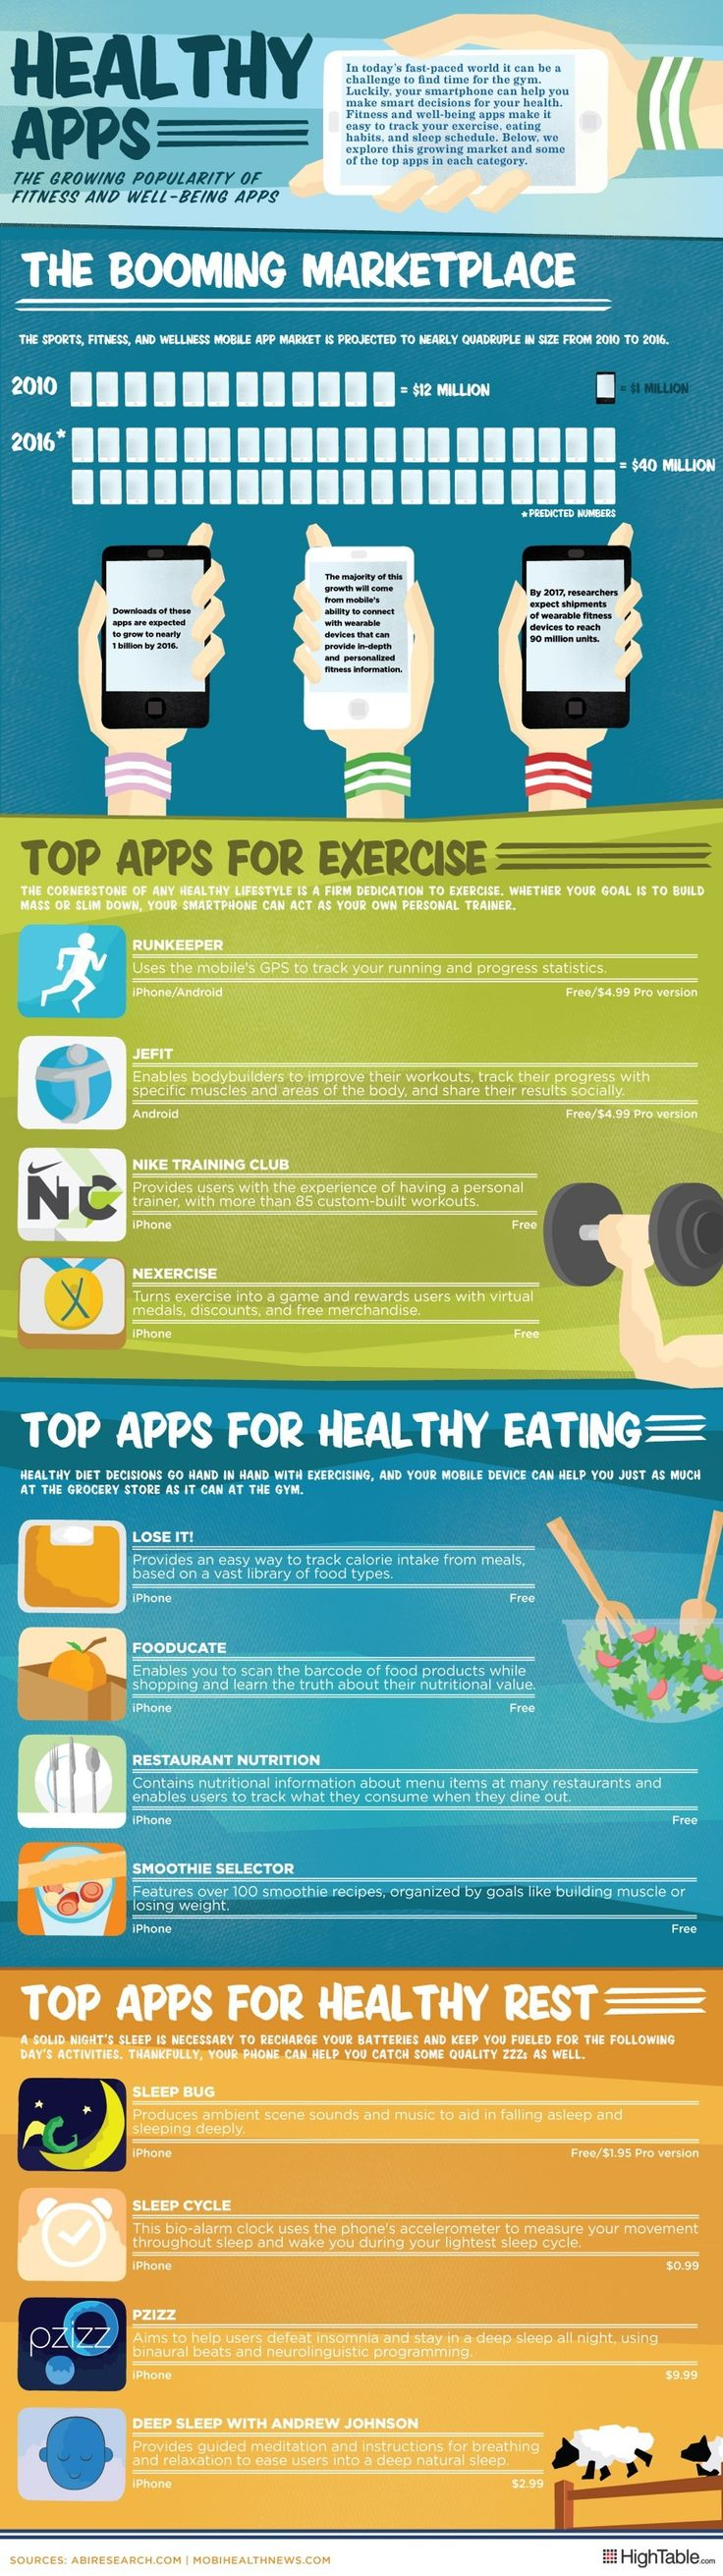 Top Health and Fitness Apps to Improve Your Workout and Diet